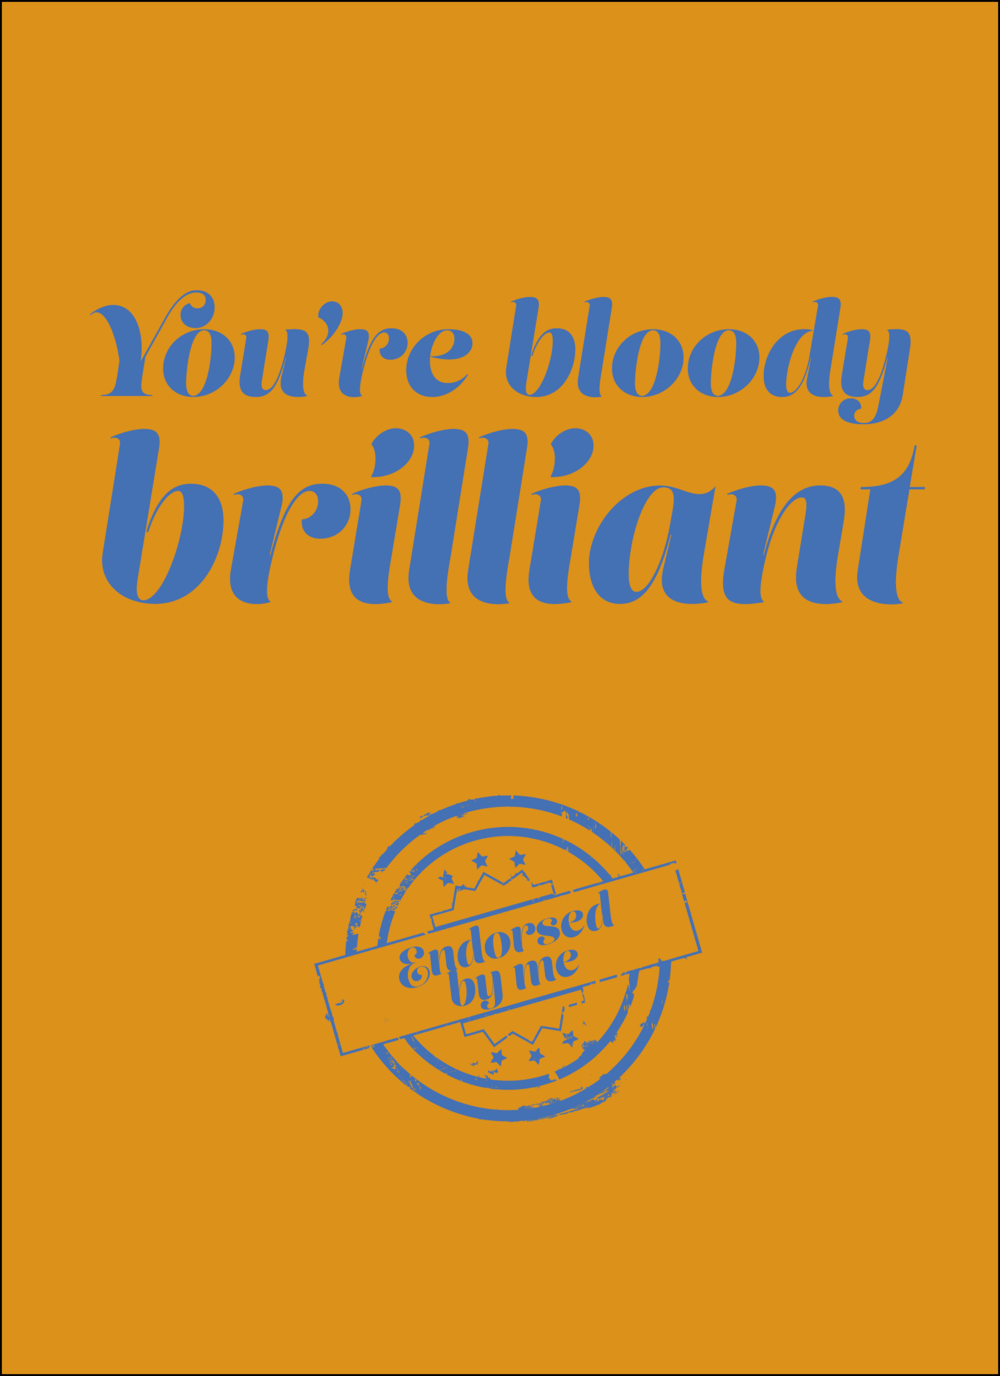 bloodybrilliant-01.png